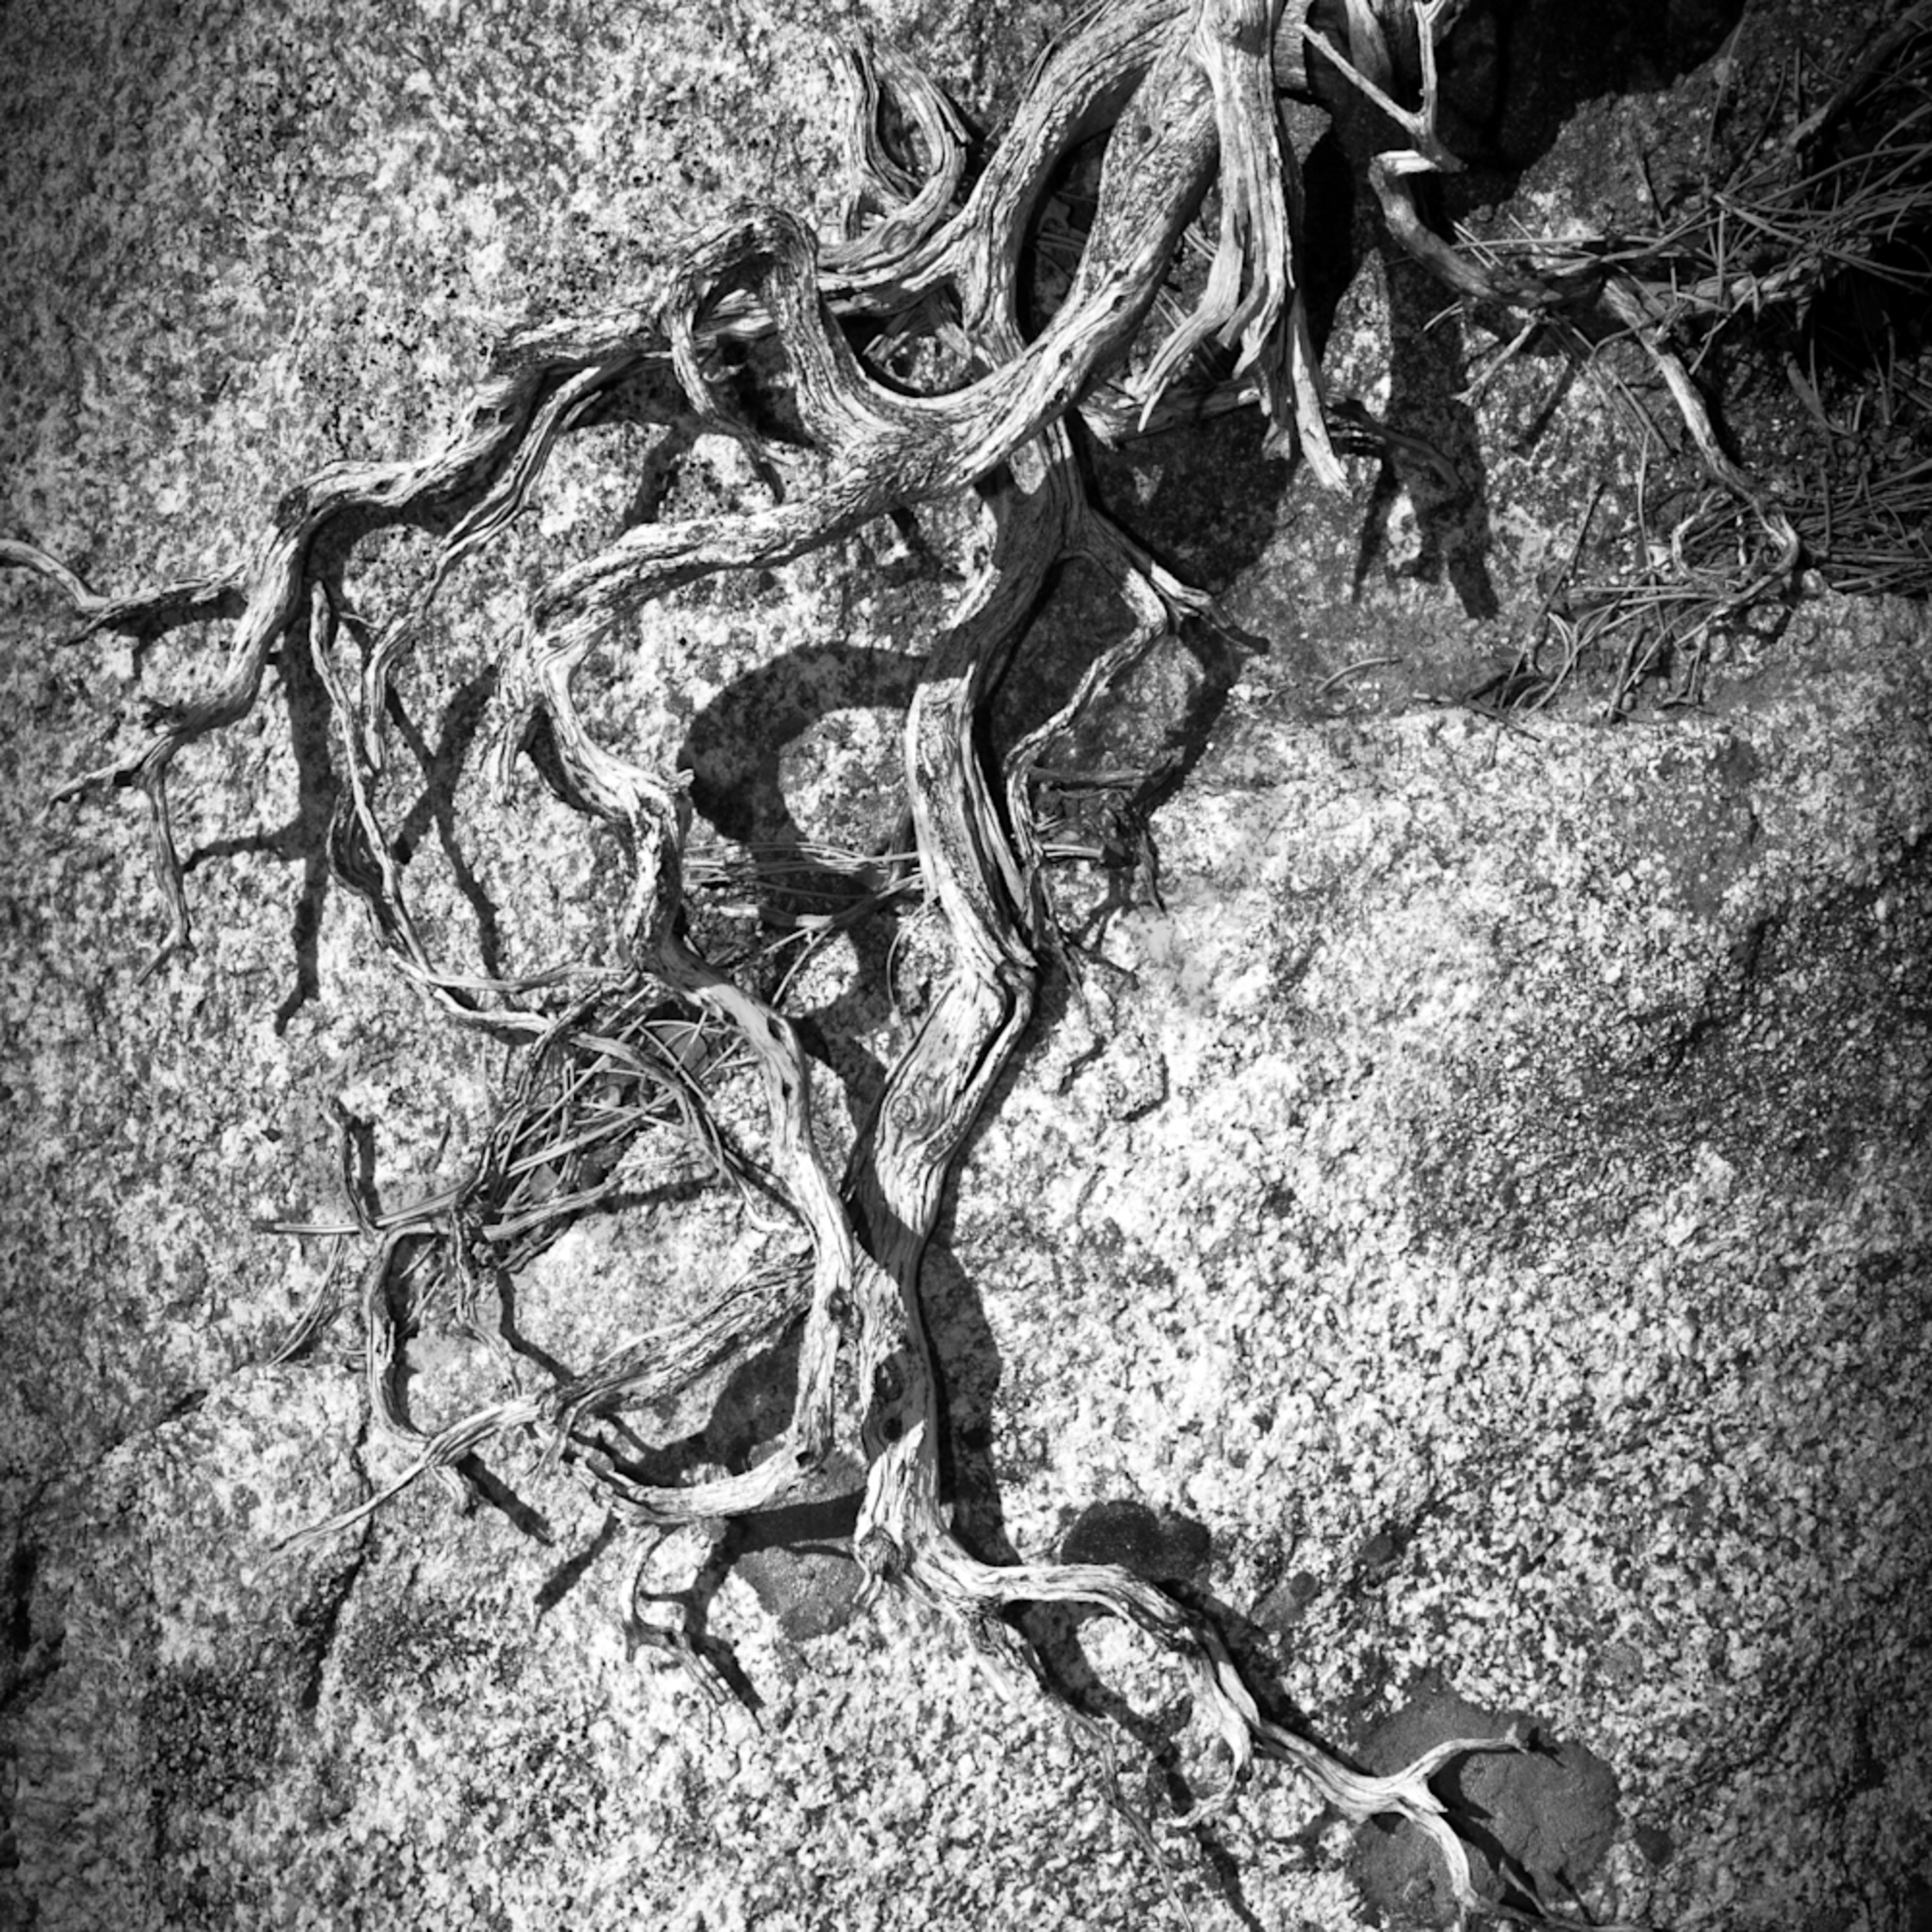 Gnarled root tree root clinging to rock black and white photo vertical artistic nature drift wood sculpture wcrczu